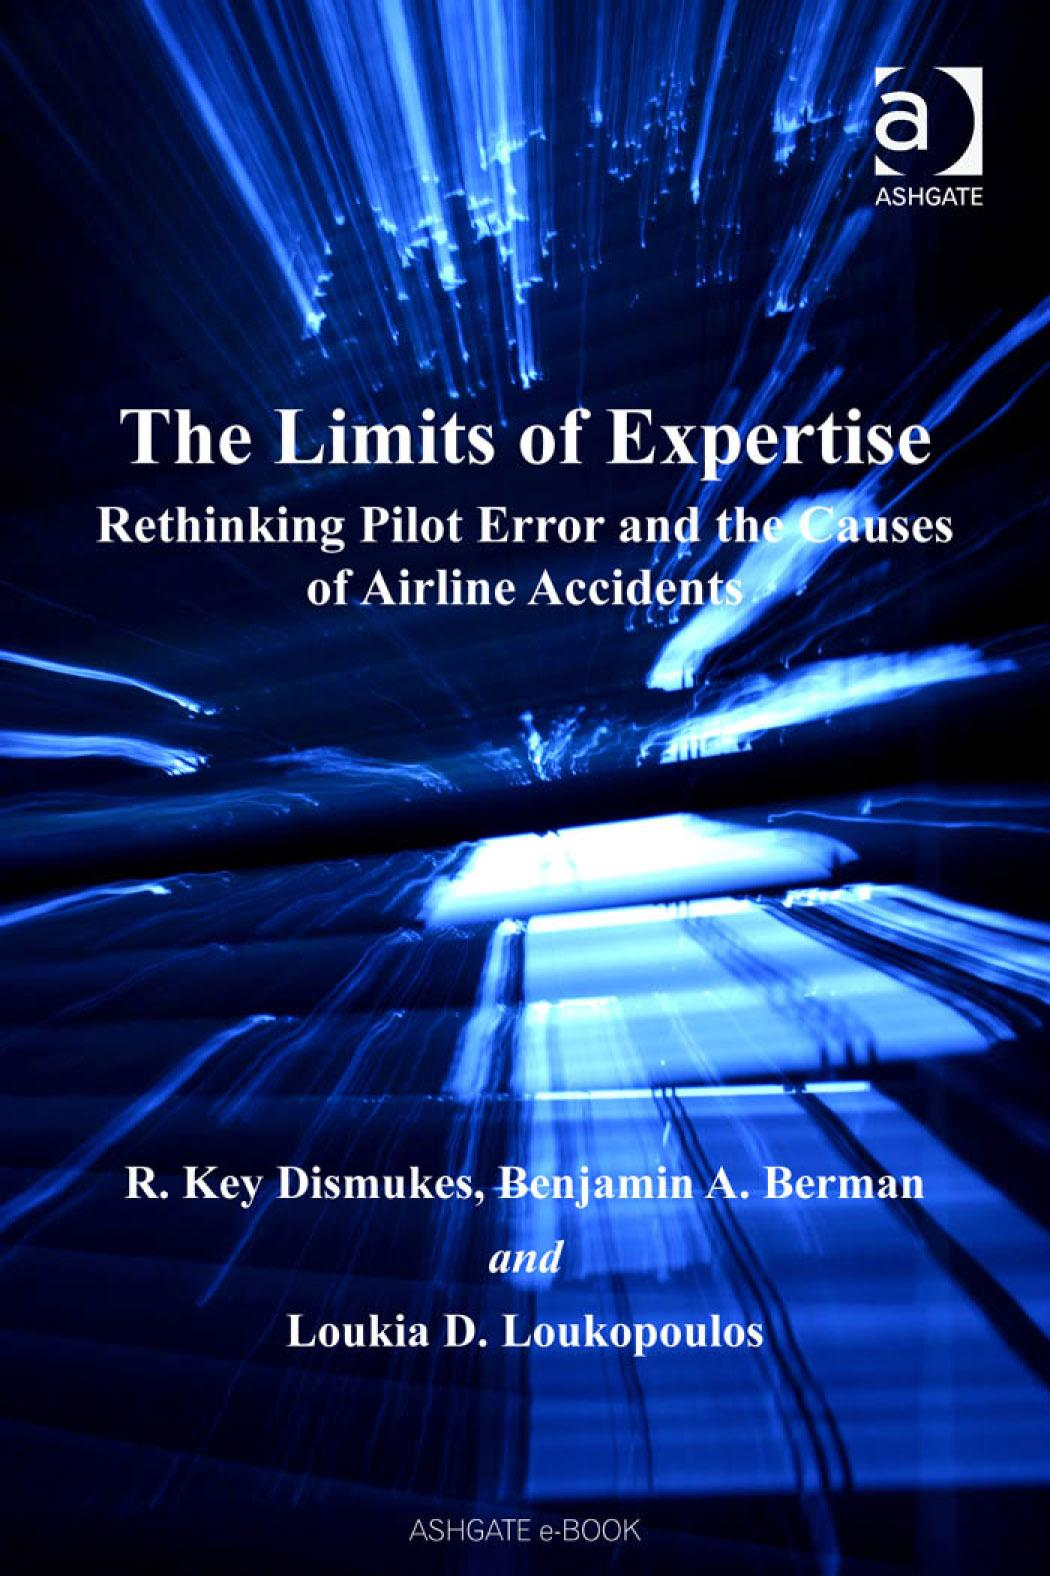 Limits of Expertise, The: Rethinking Pilot Error and the Causes of Airline Accidents. Ashgate Studies in Human Factors for Flight Operations. EB9780754685746